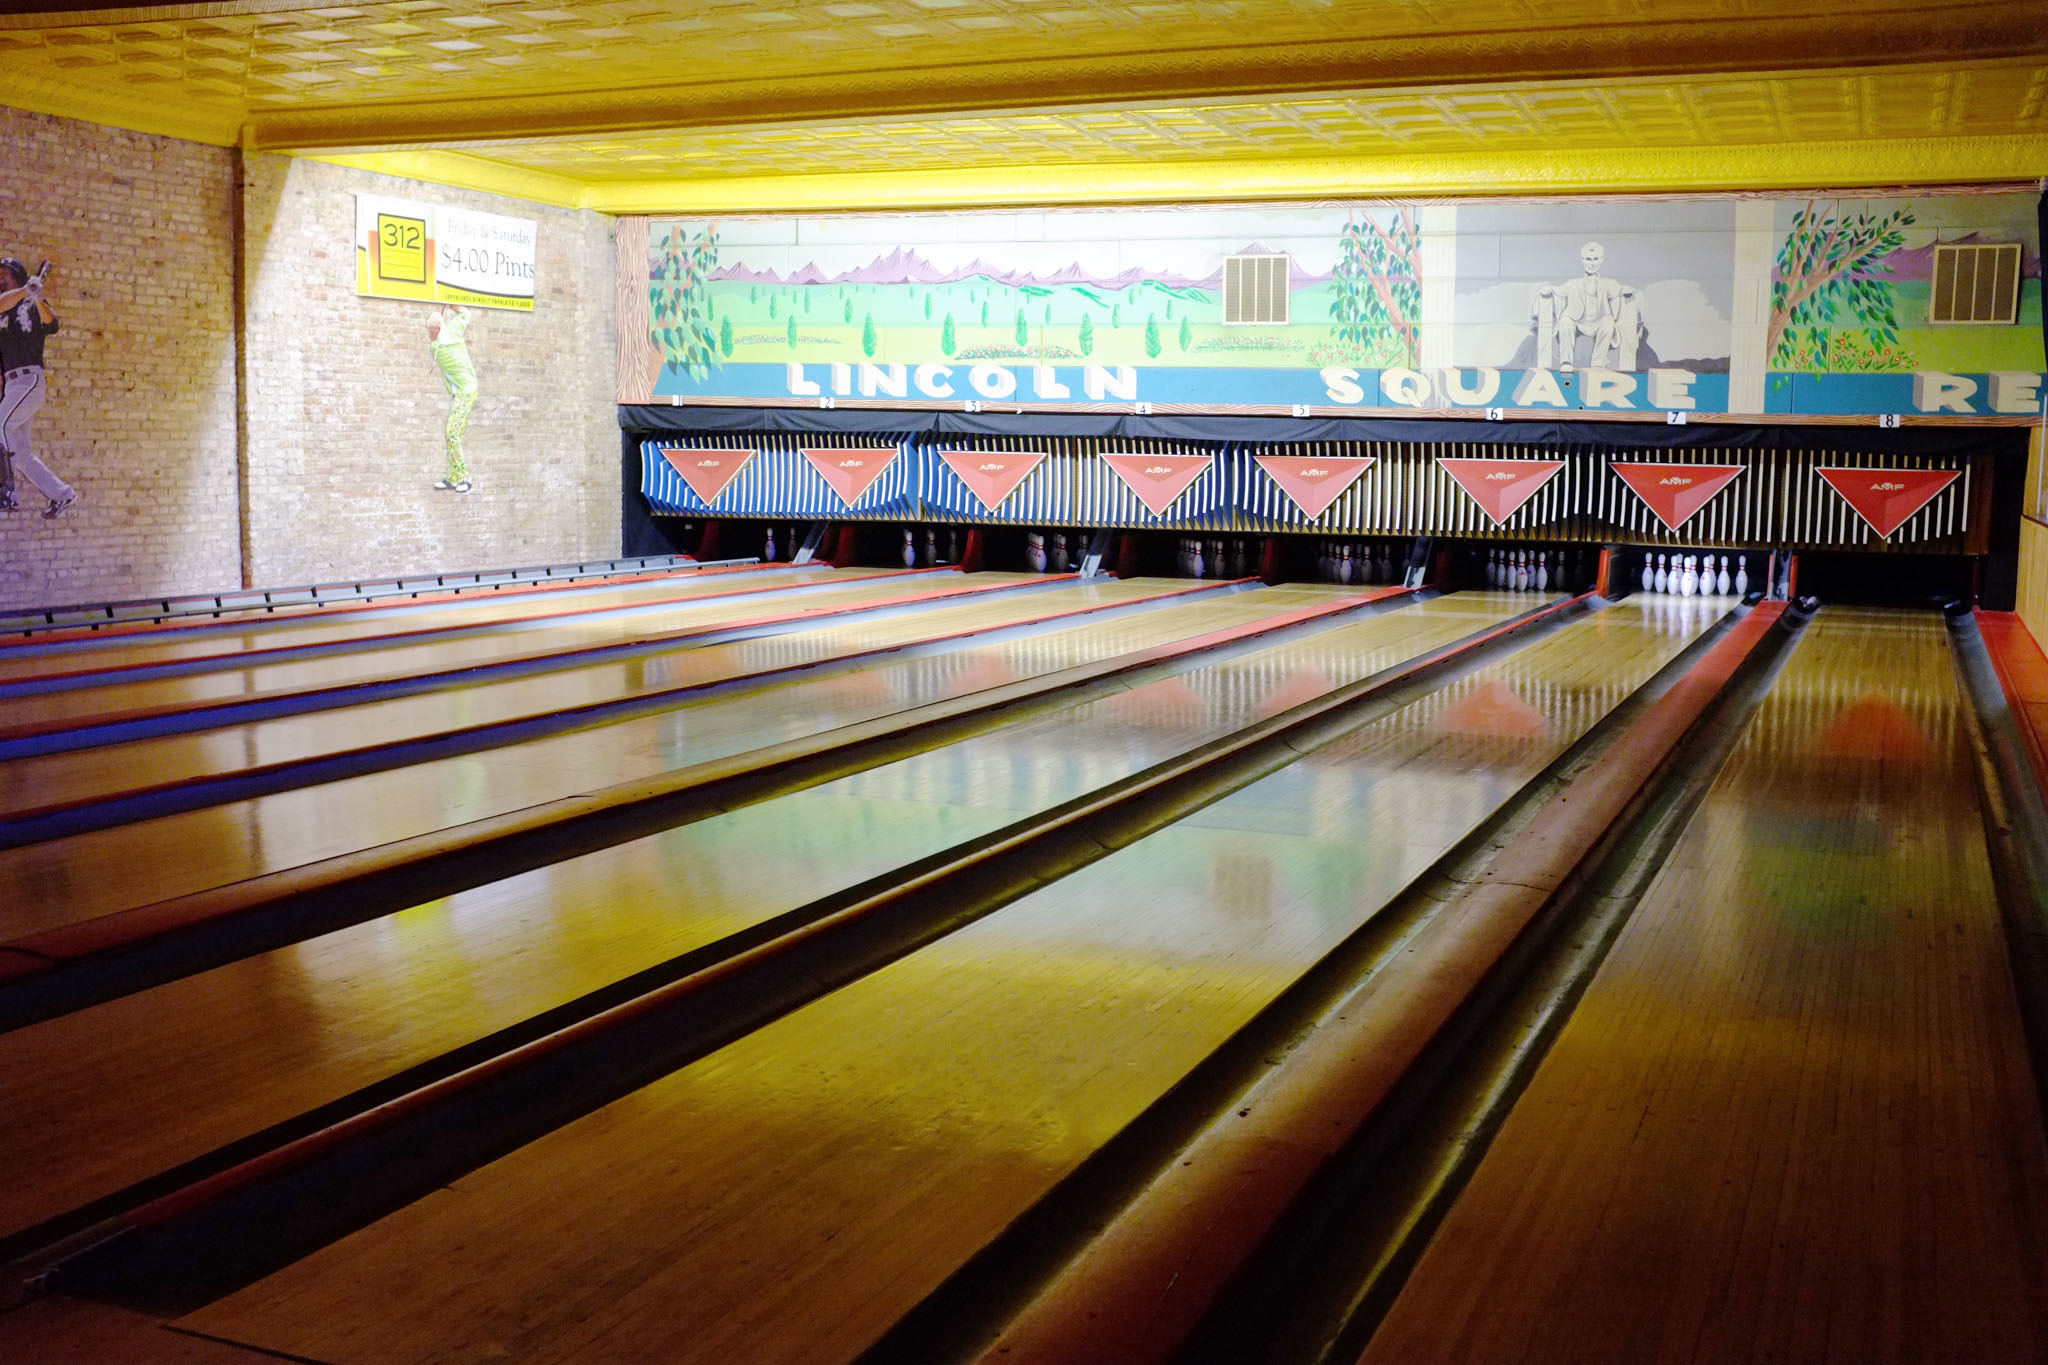 Lincoln Square Lanes